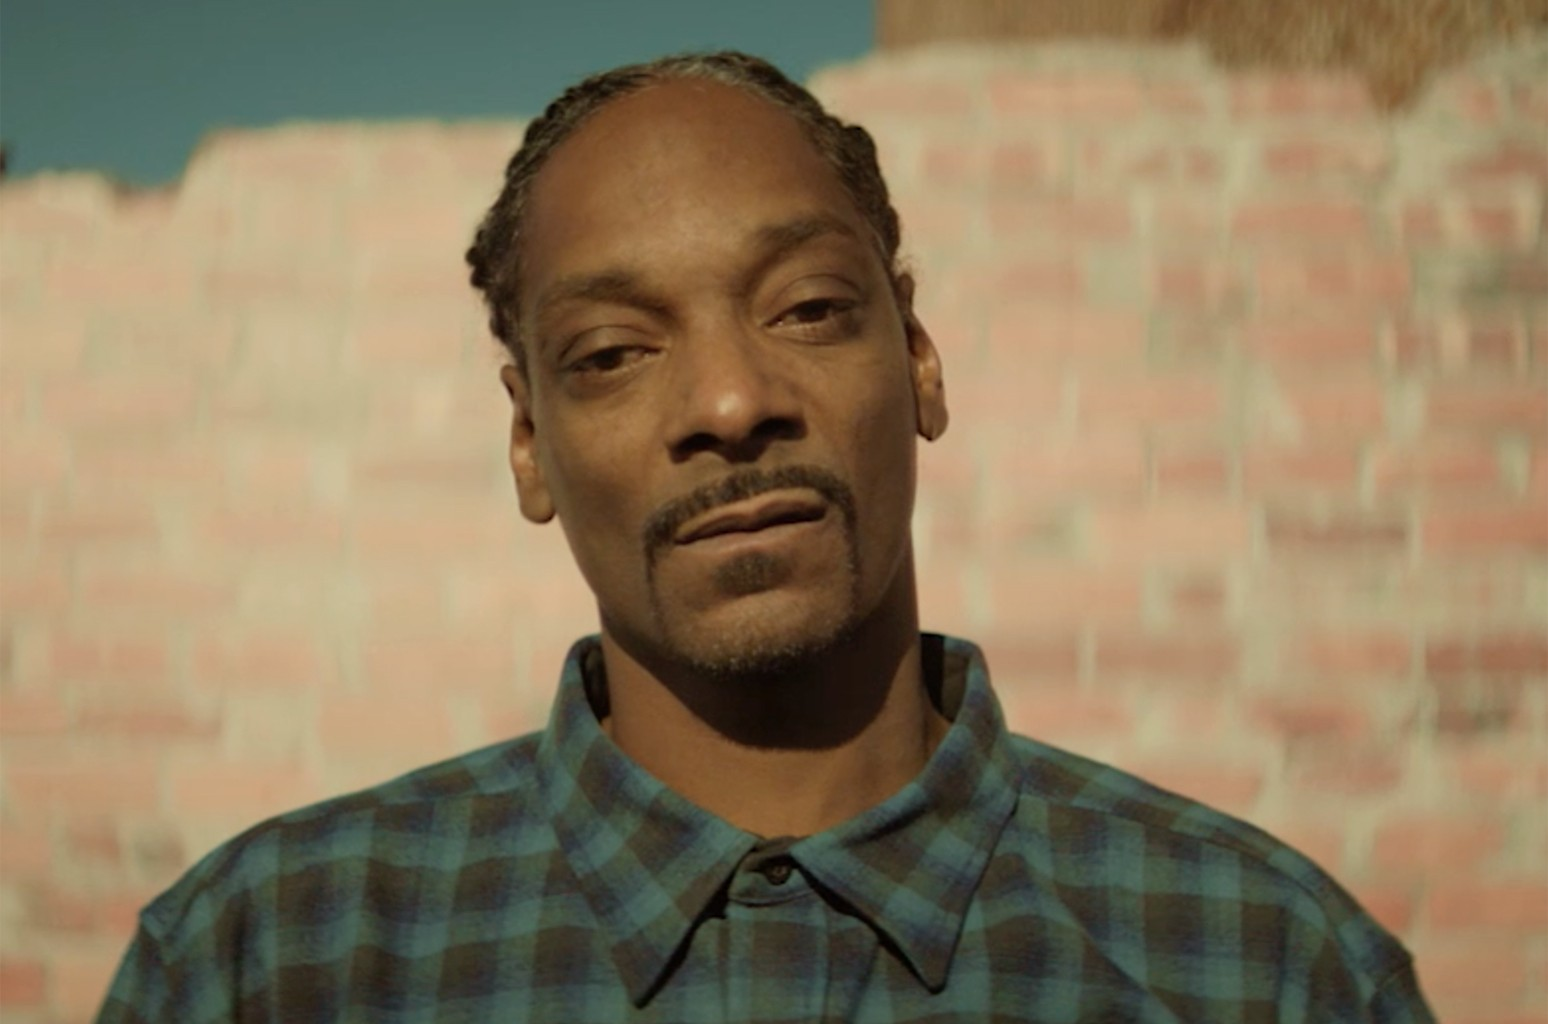 Snoop Dogg in a video for Adidas Originals